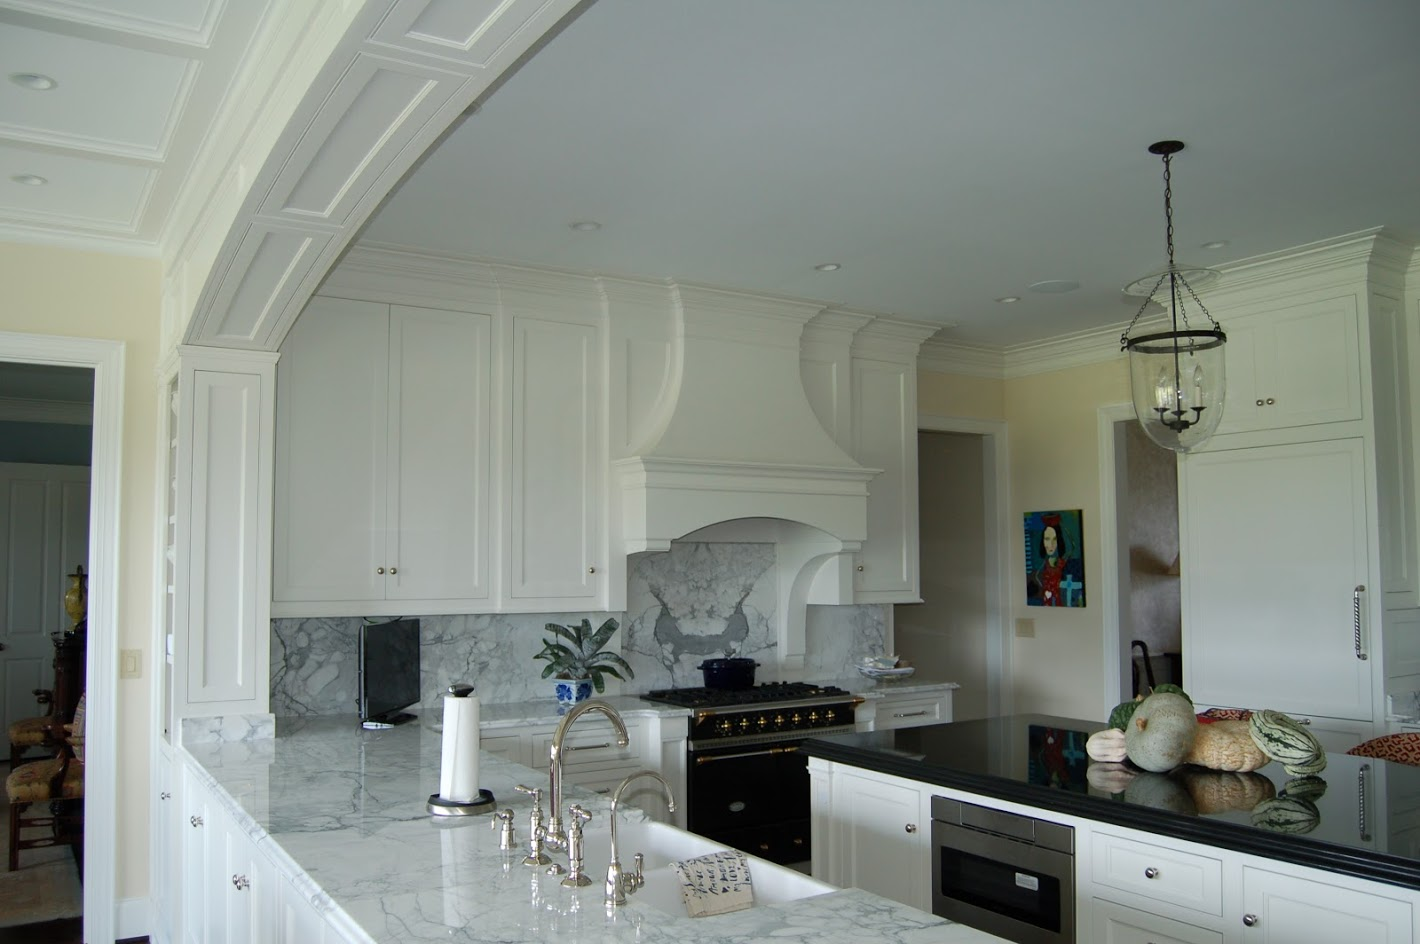 Kitchen & HoodDSC_0046.JPG